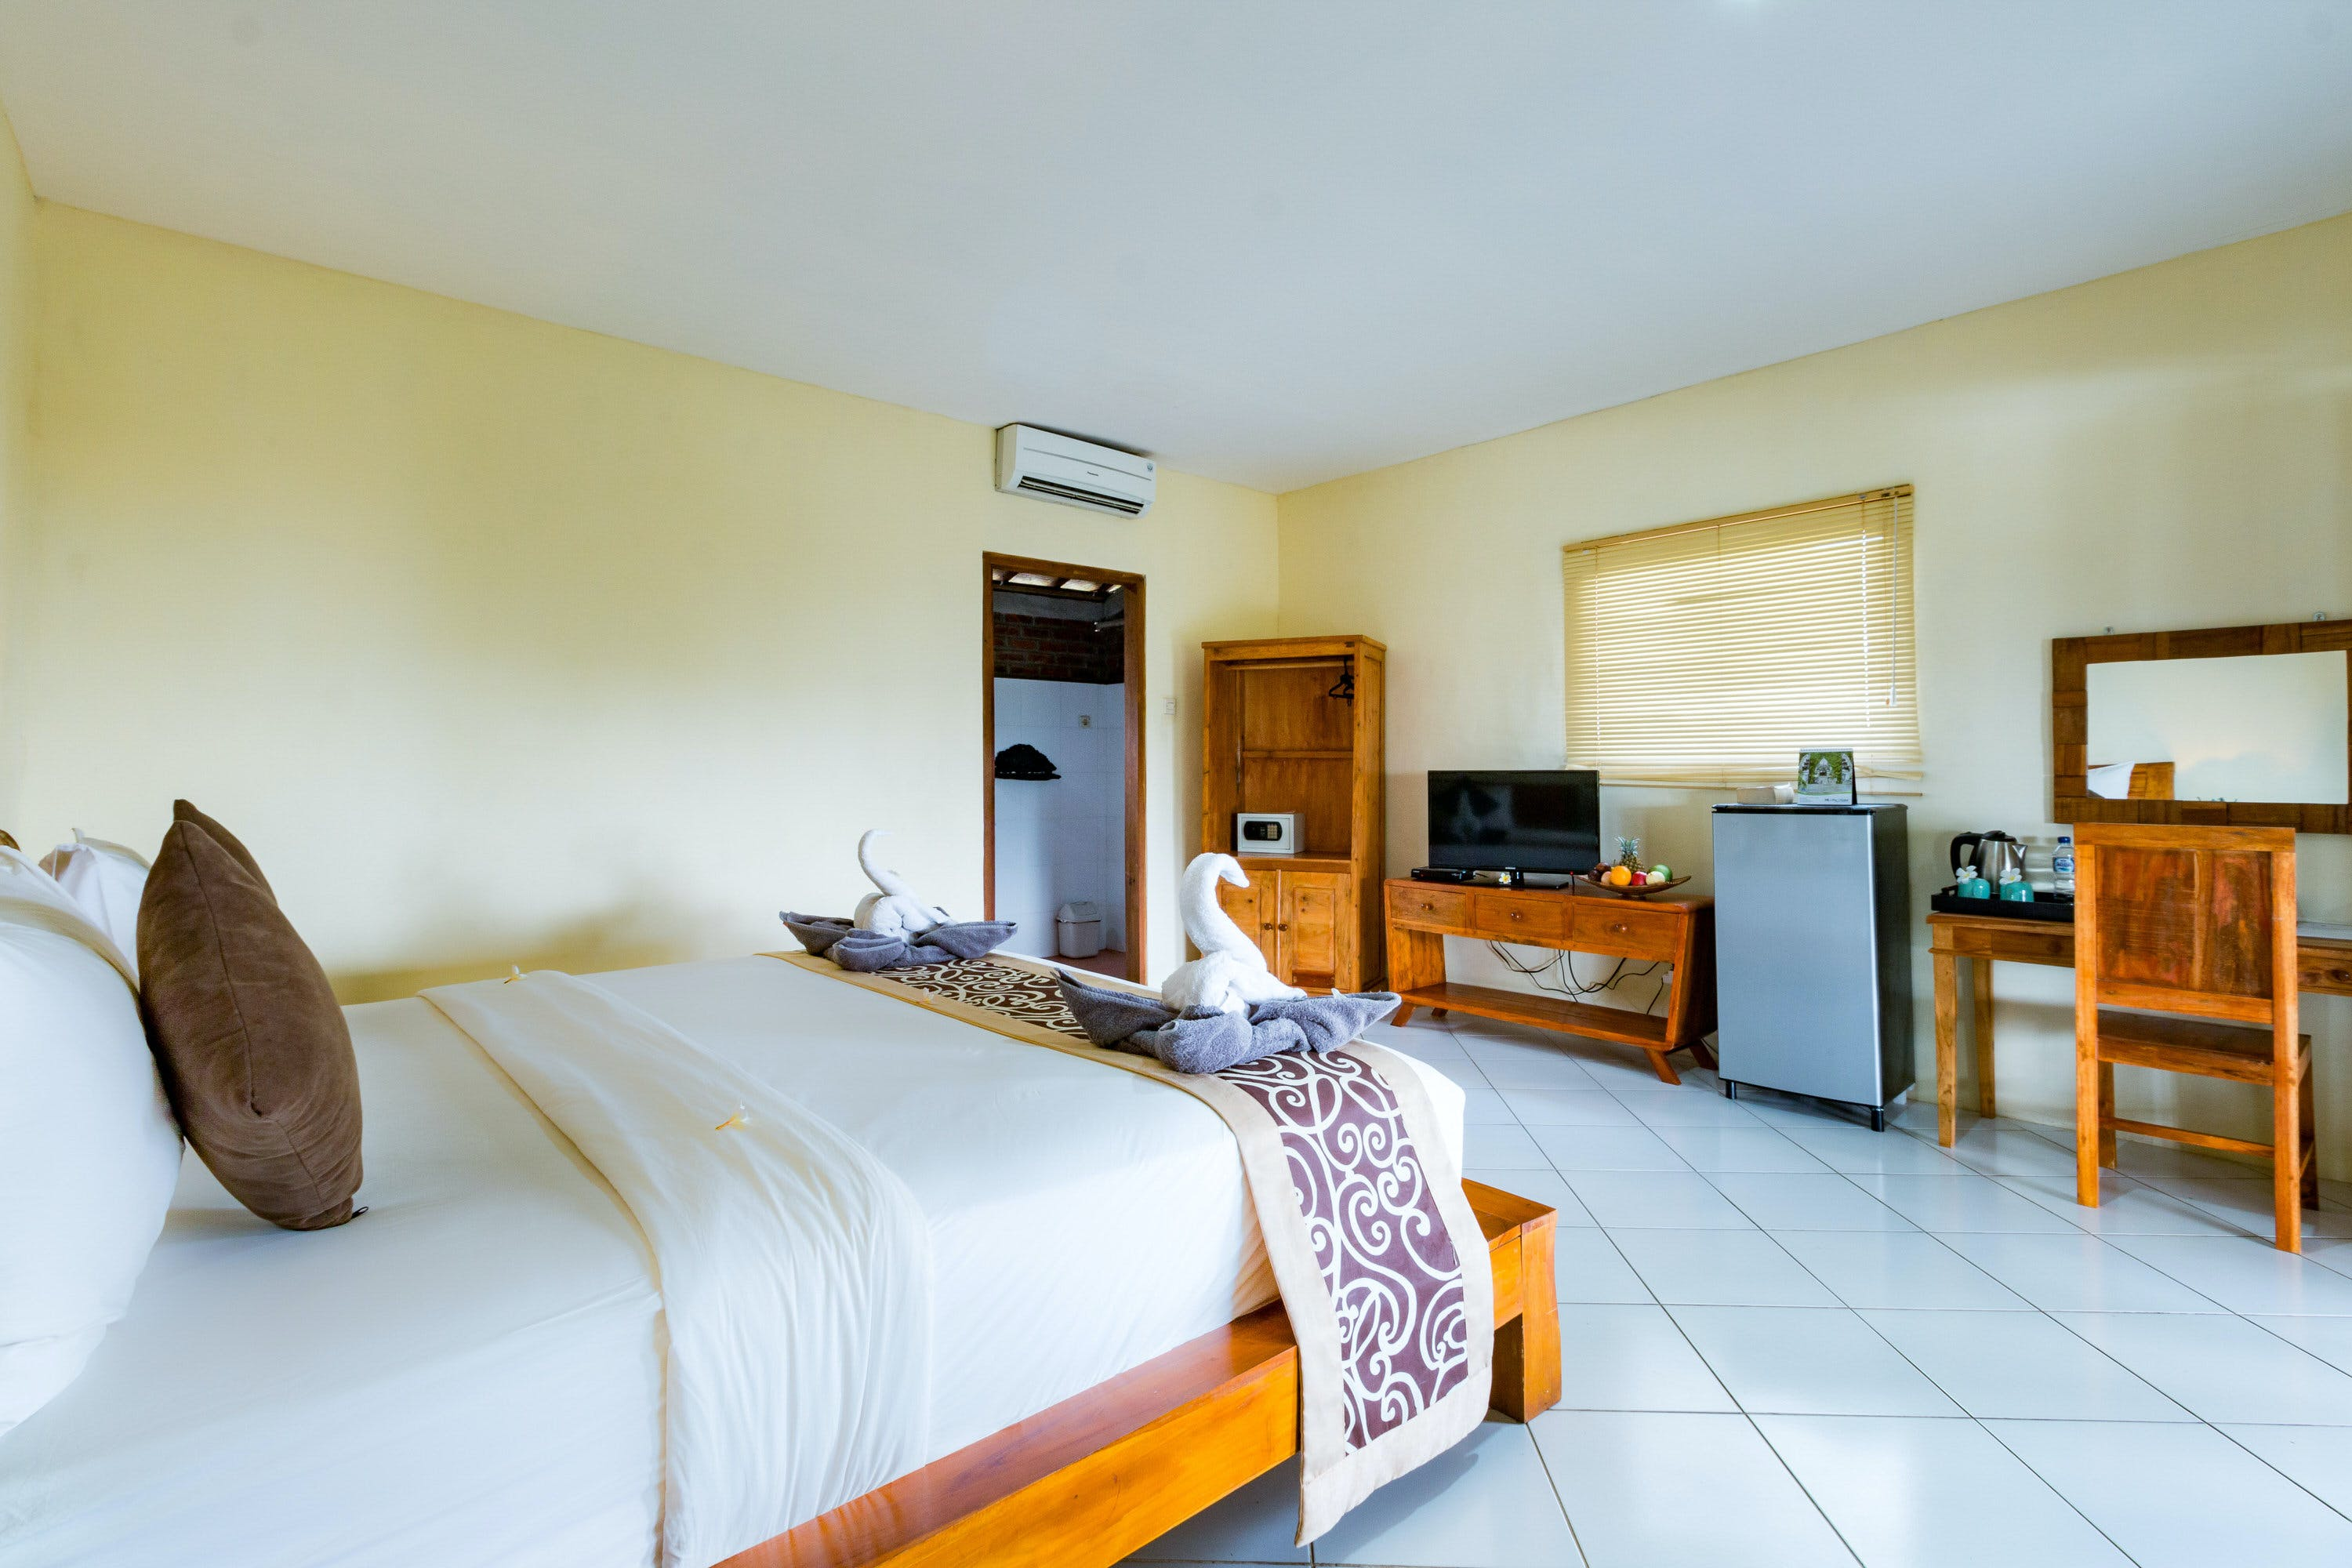 Garden View Room at Sea Medewi Resort, best hotel for surfing, yoga, and enjoy Medewi beach in Negara